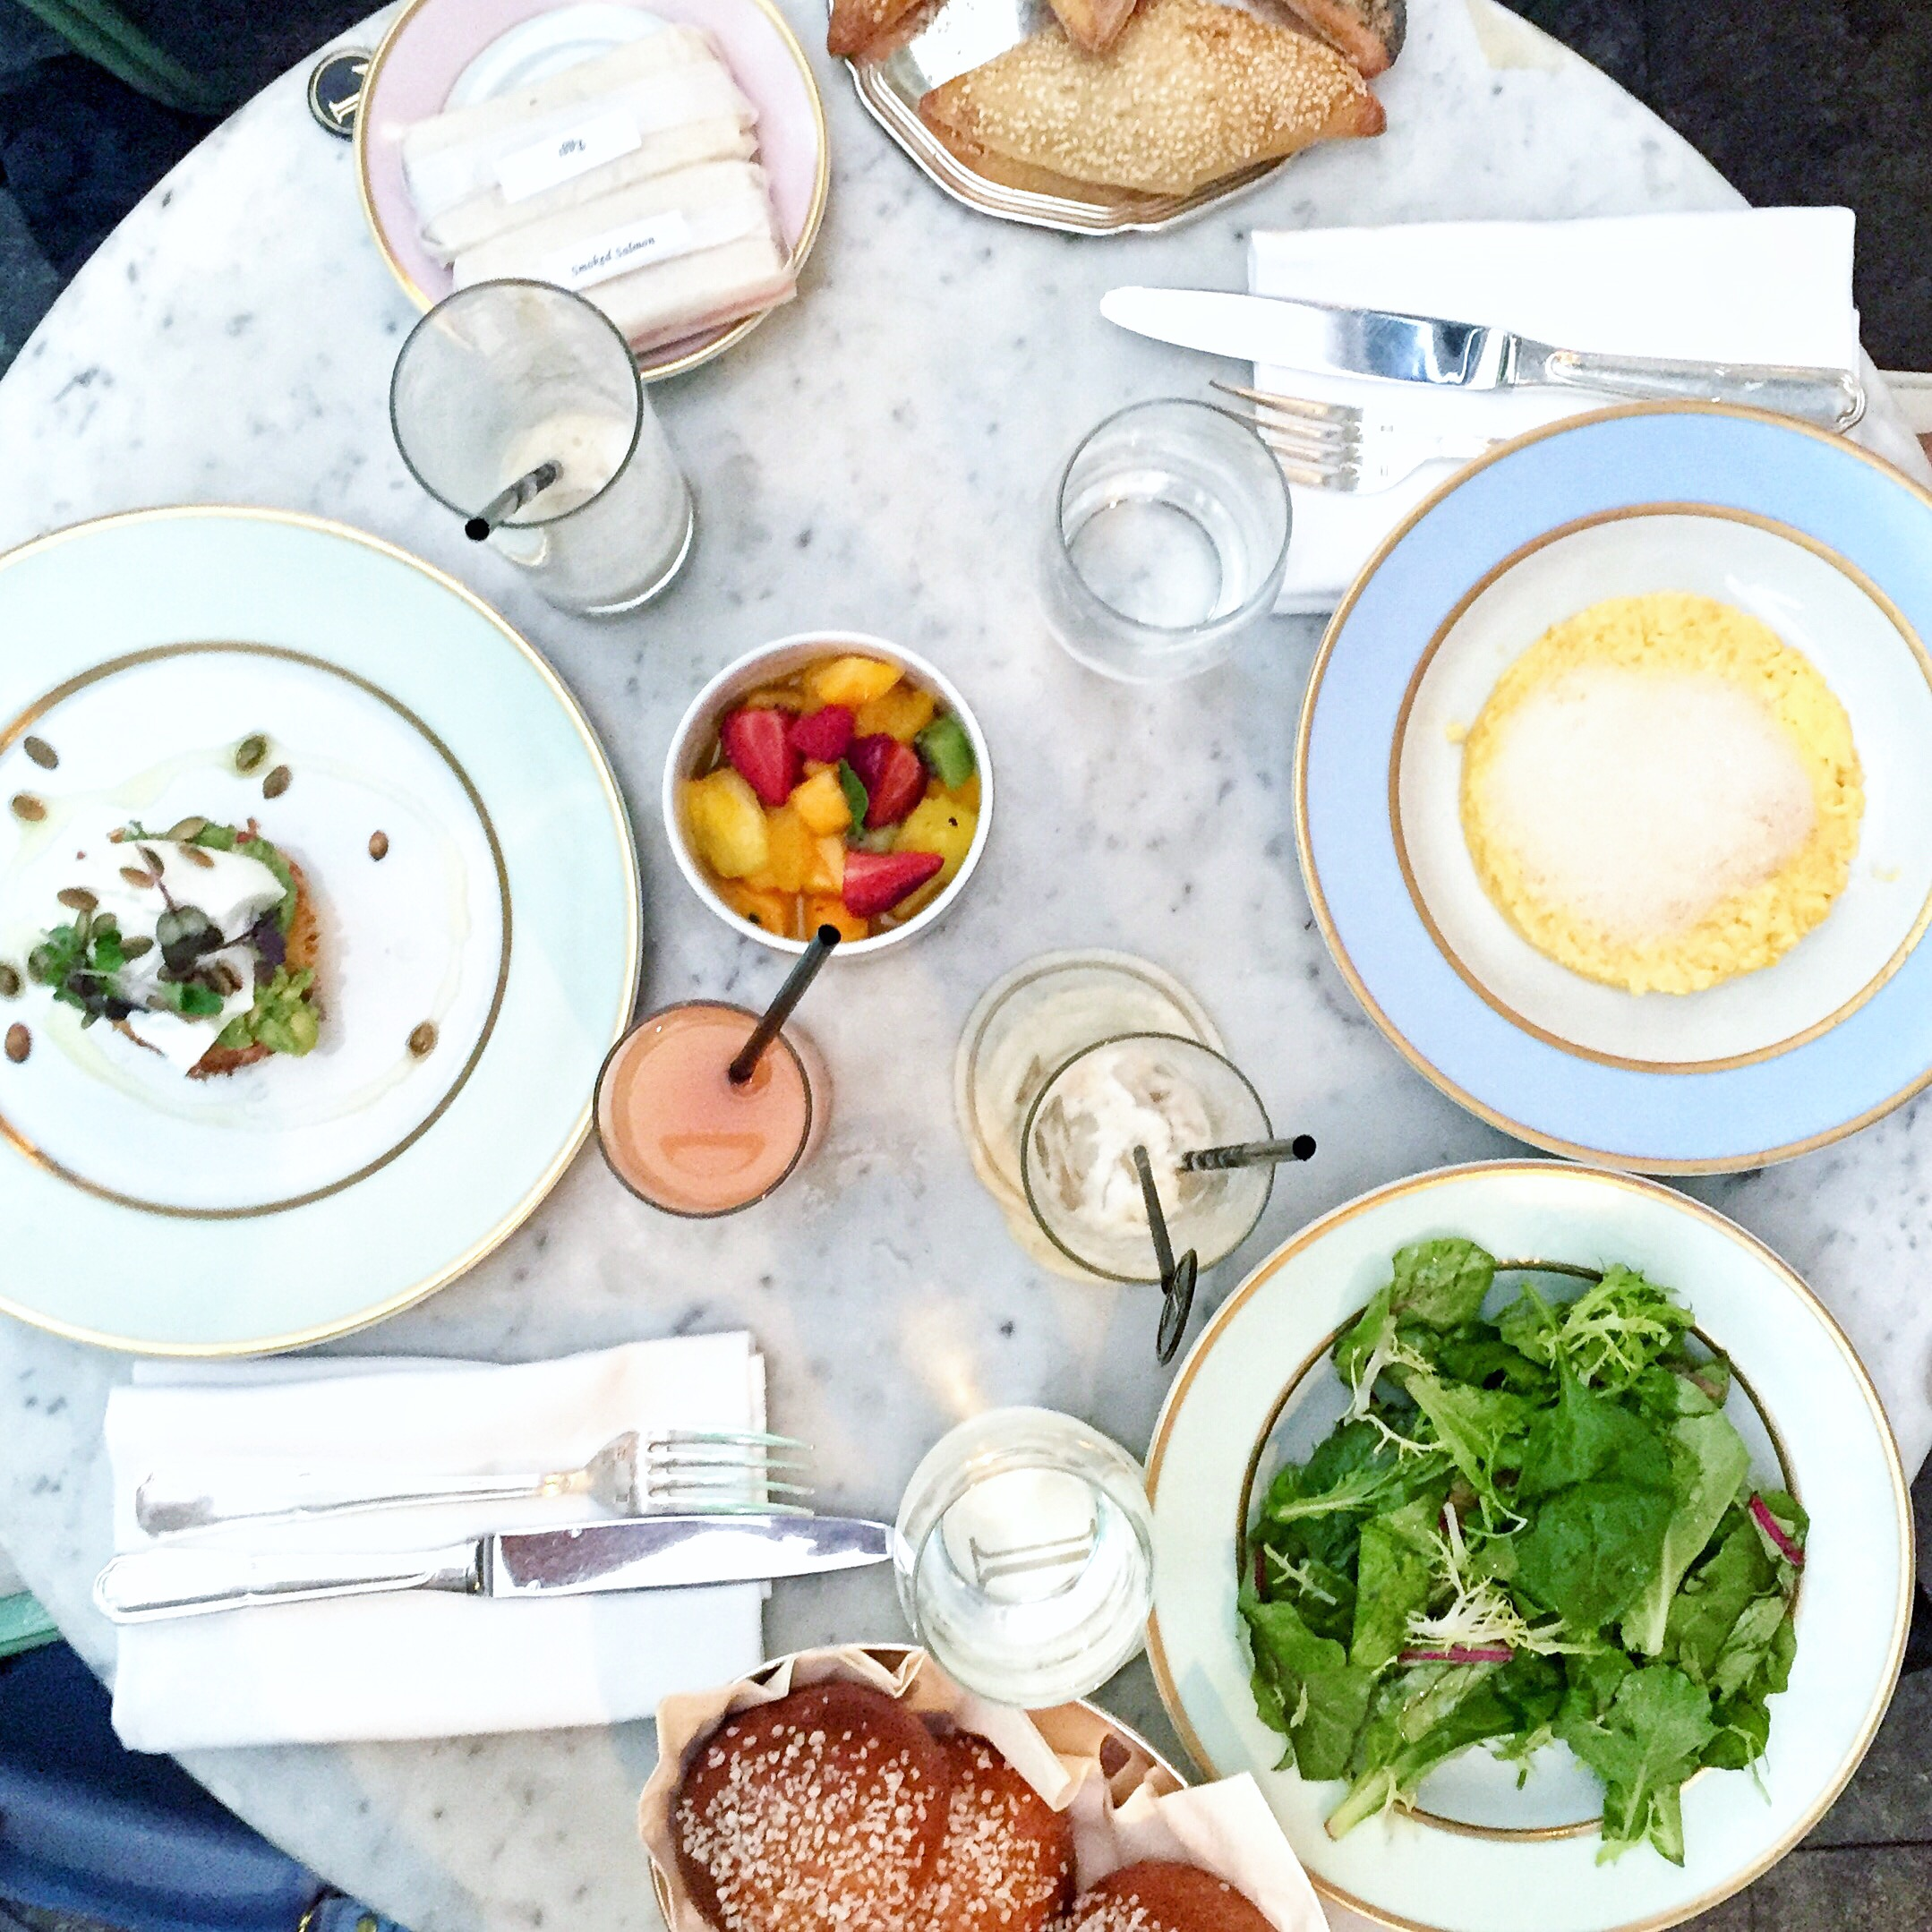 A picture is definitely worth a thousand words in this case...I mean how perfect is the spread? Poached egg over avocado toast, grapefruit juice, fruit salad and sweet rolls.